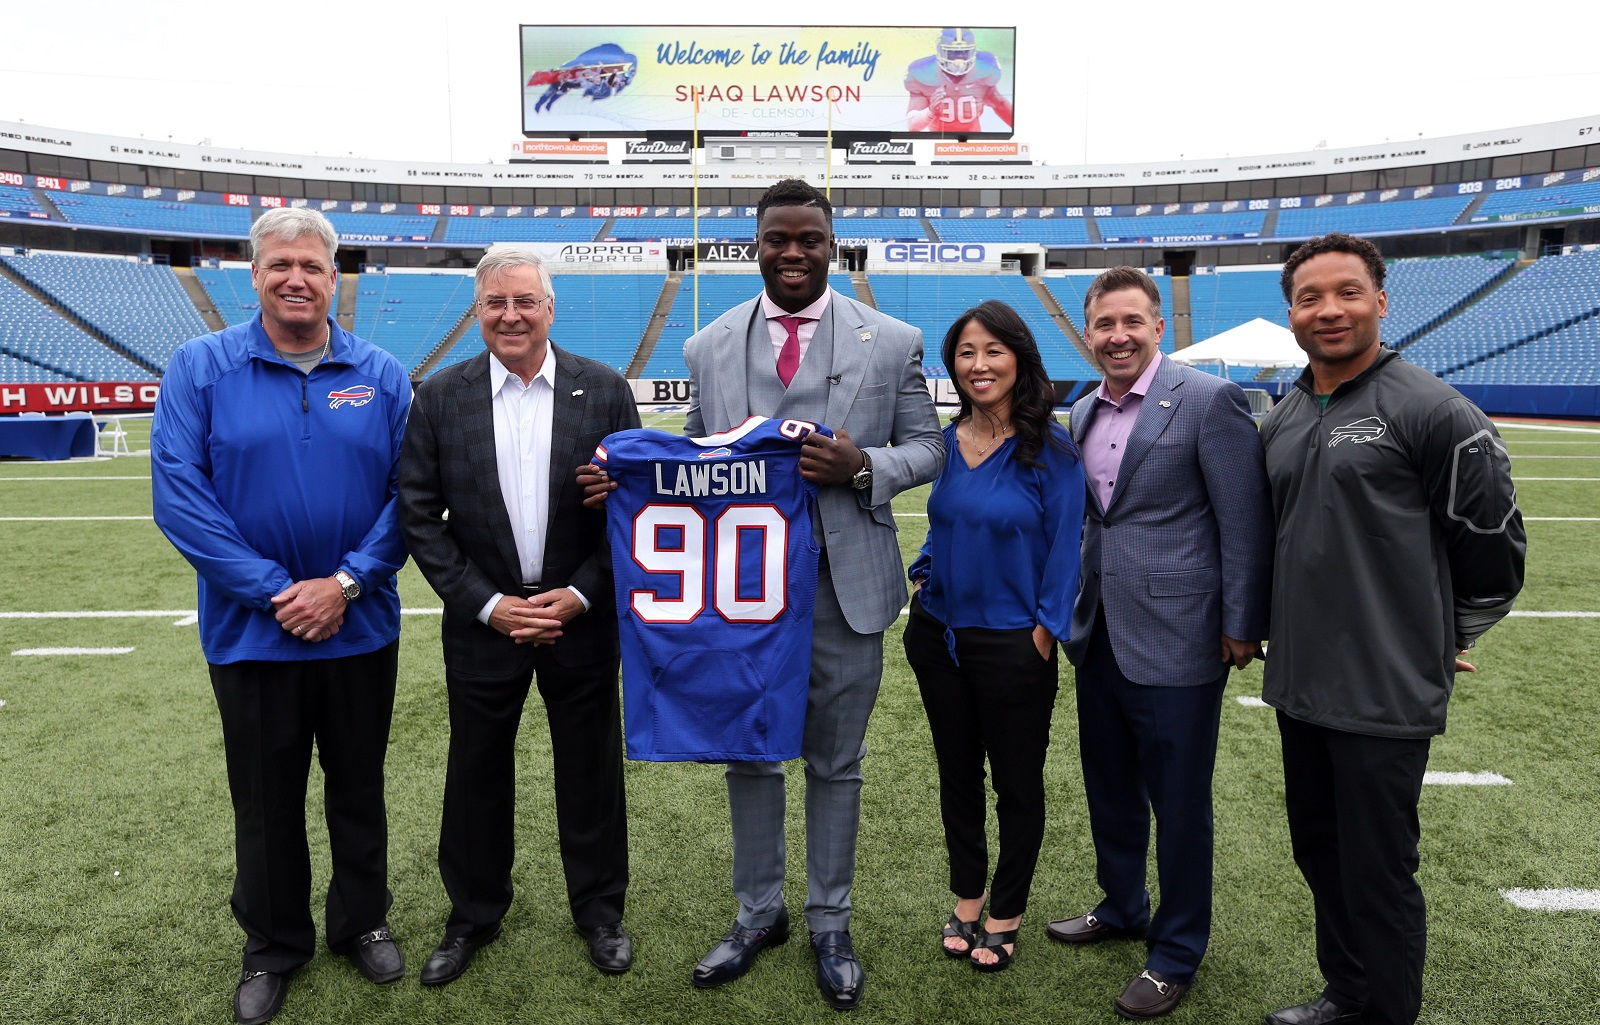 Shaq Lawson poses with the Bills' brass after being chosen as Buffalo's first-round pick. (James P. McCoy/Buffalo News)